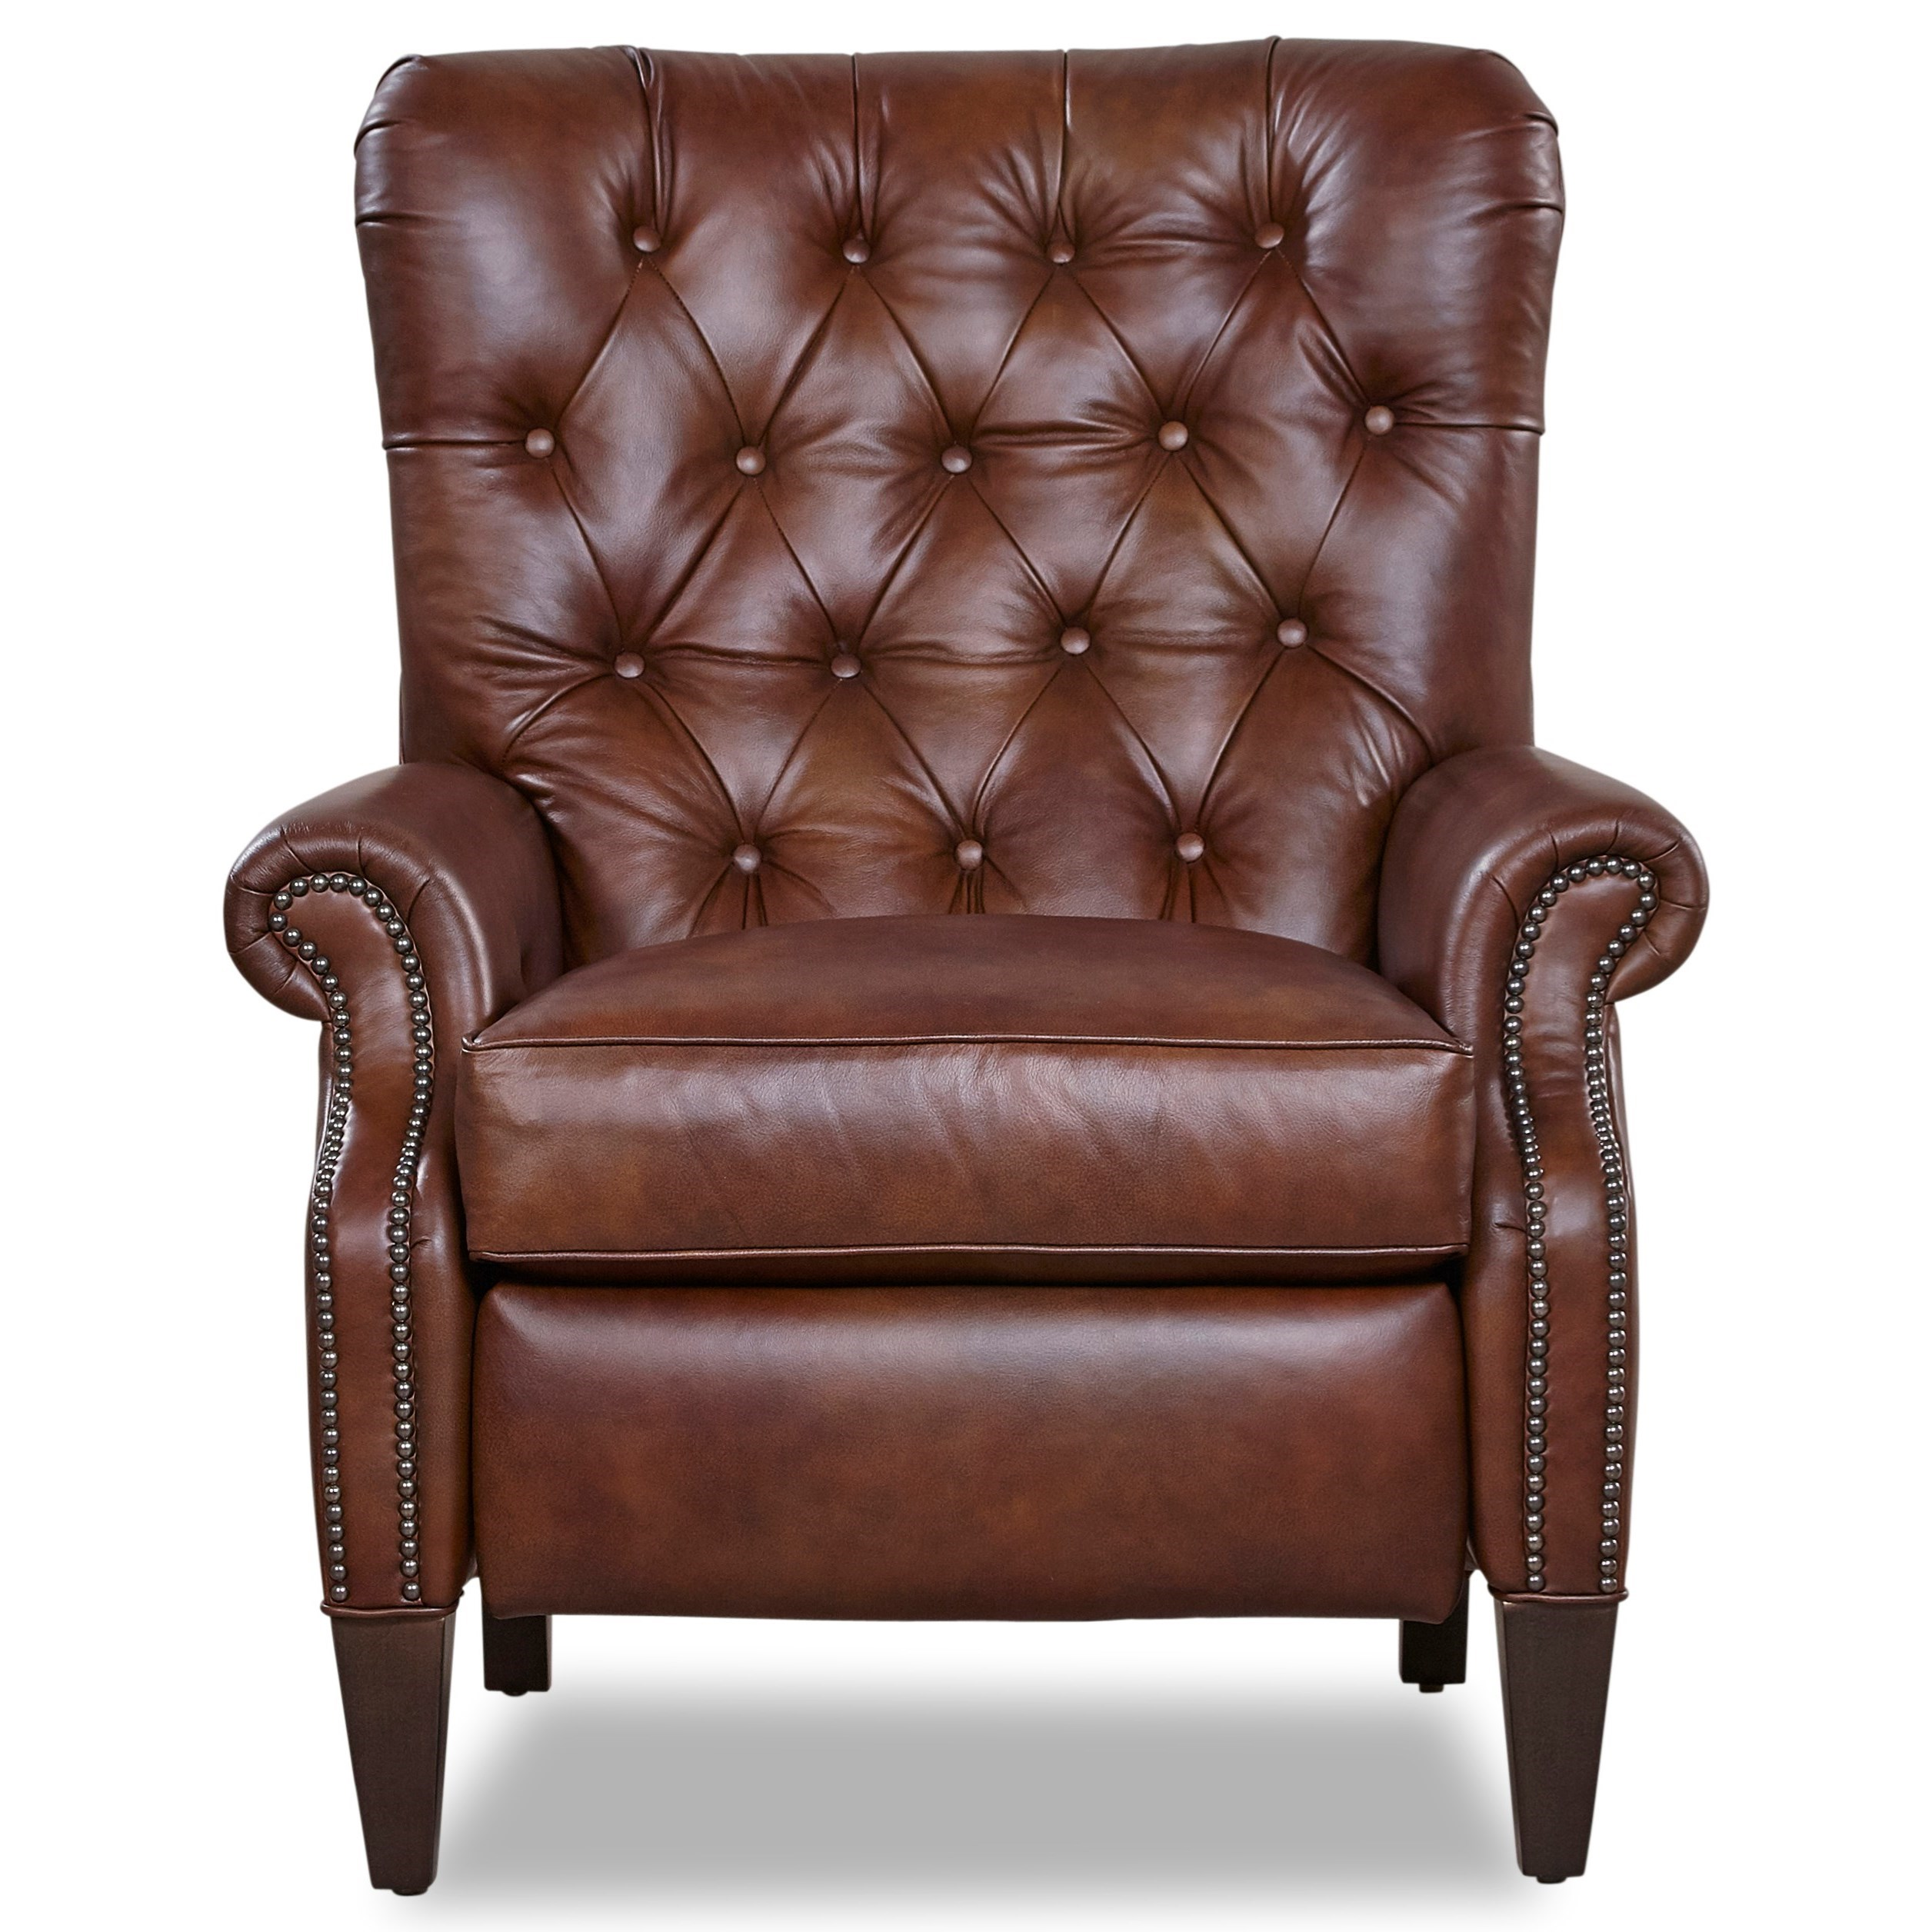 Huntington House Furniture Quality Huntington House 8121 Traditional Power Recliner With Button